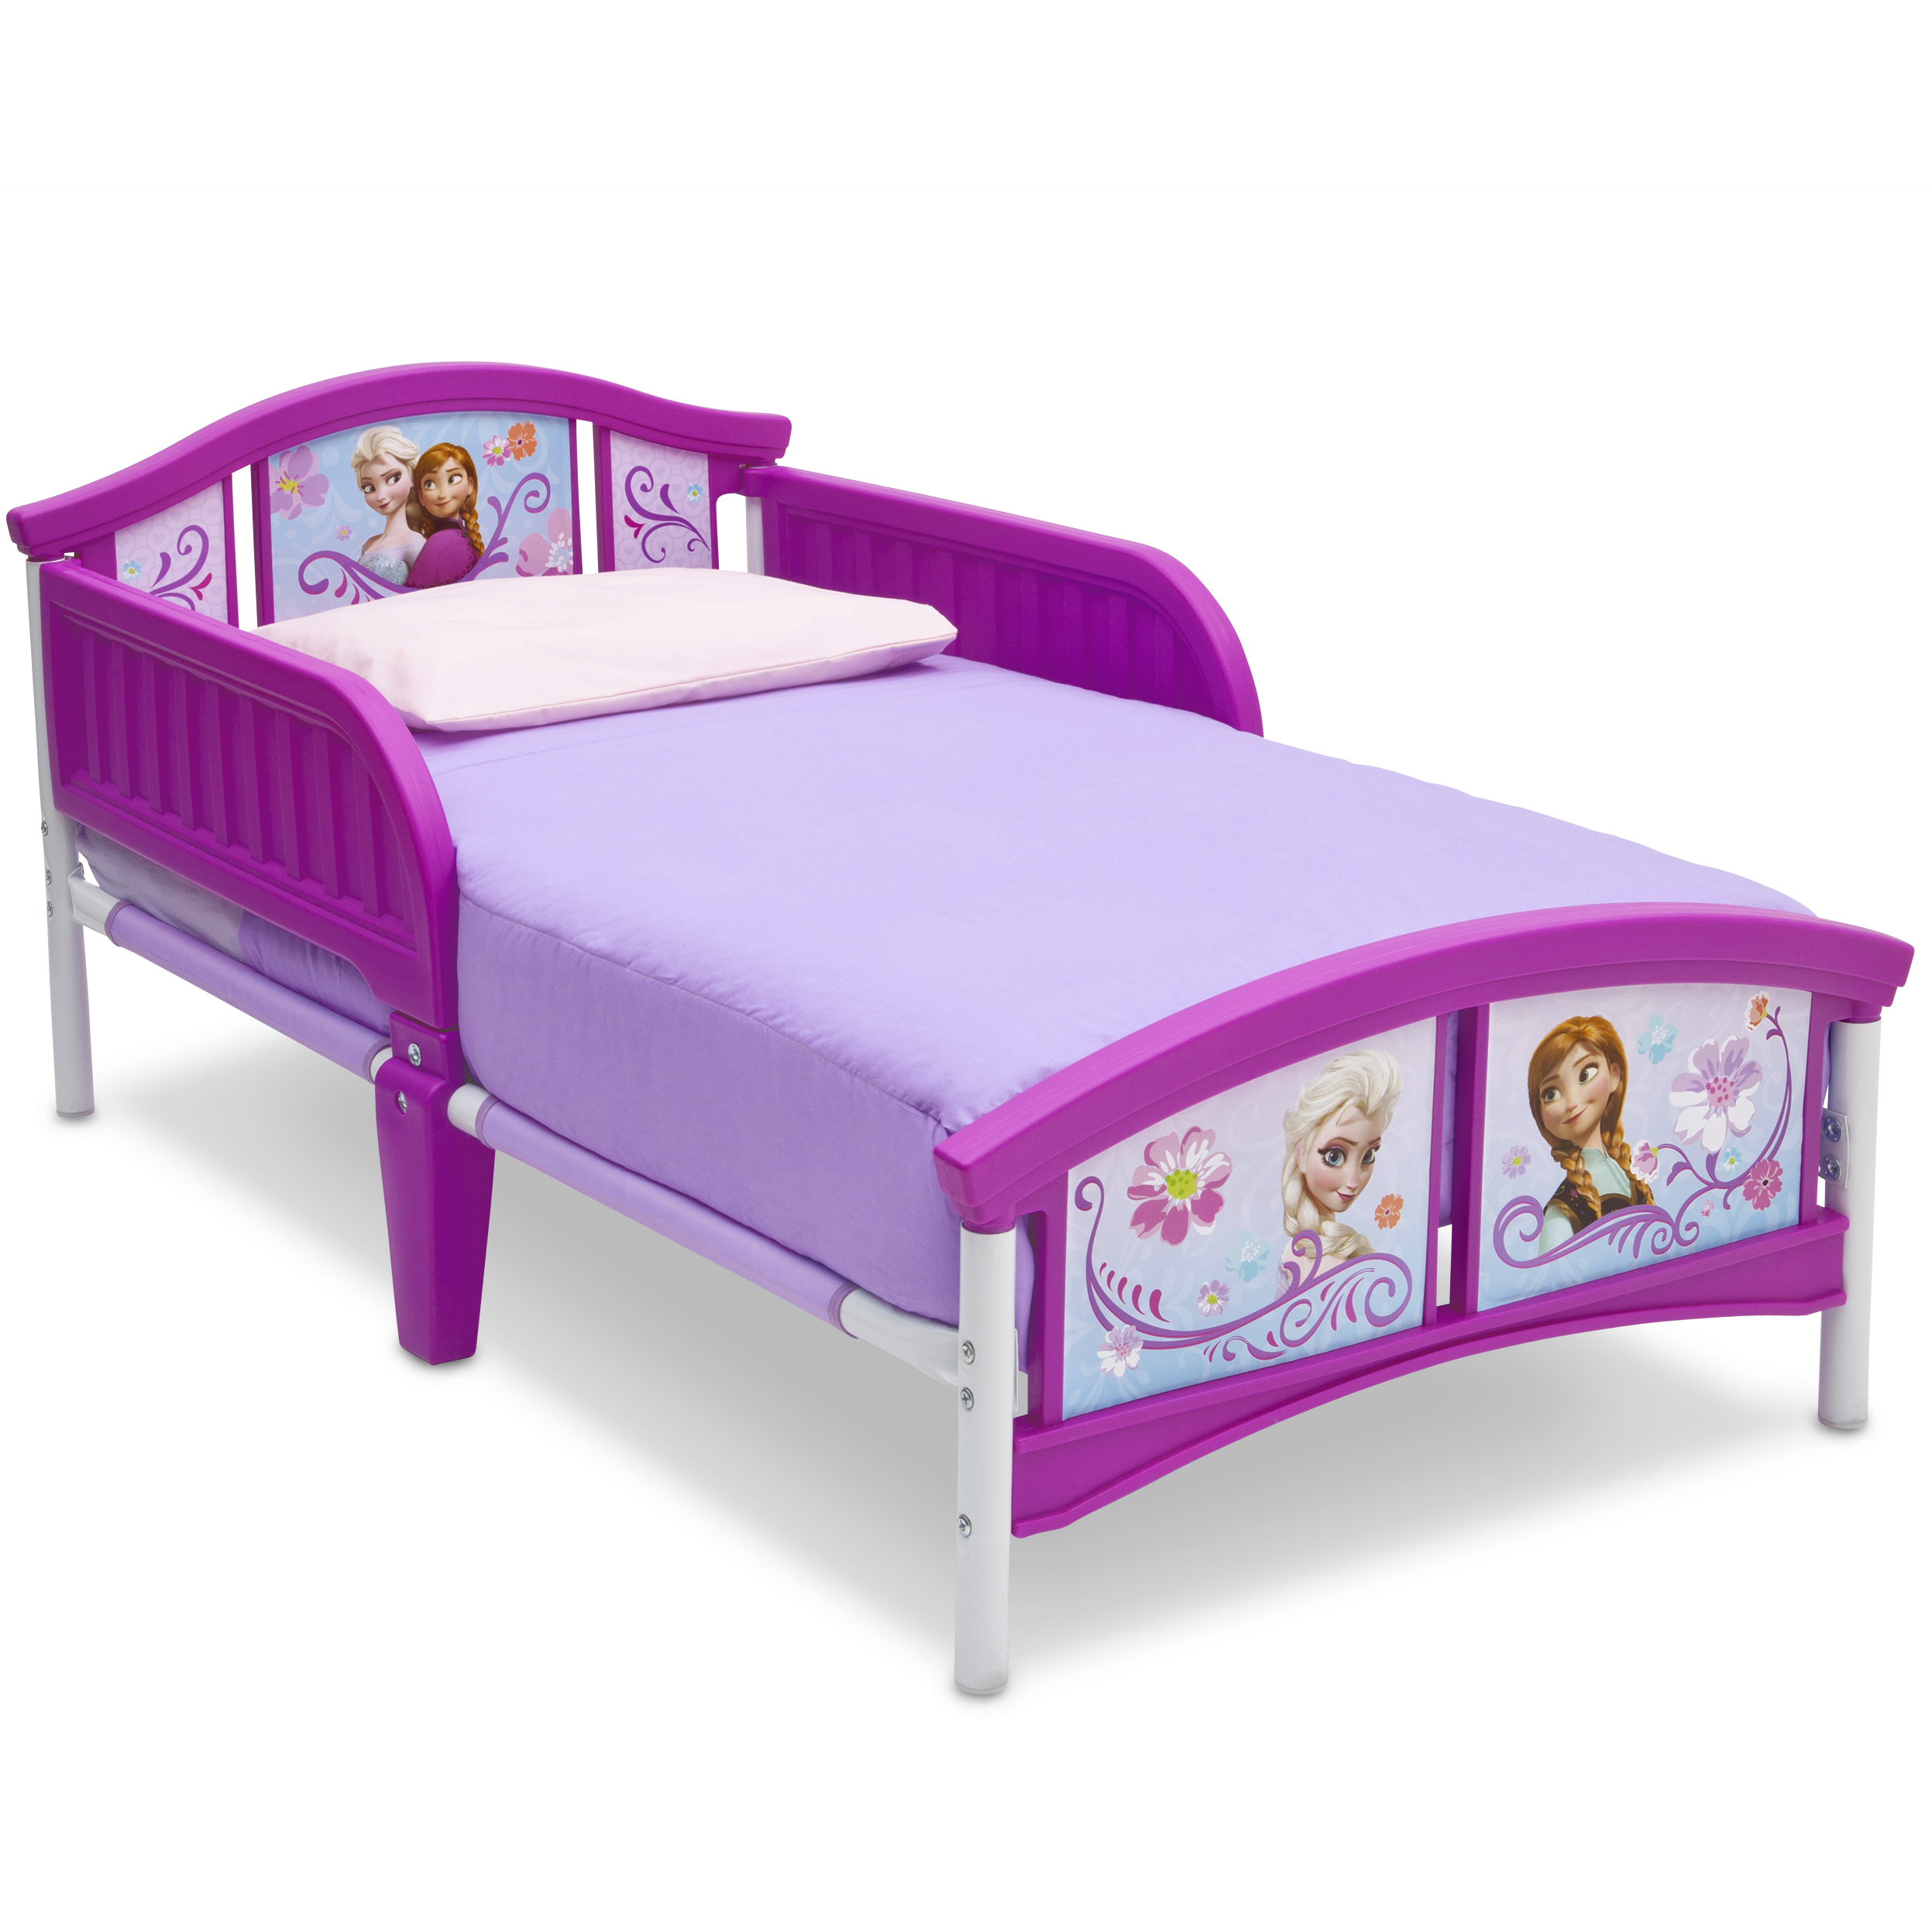 Delta Children Disney Frozen Plastic Toddler Bed, Purple - Walmart.com